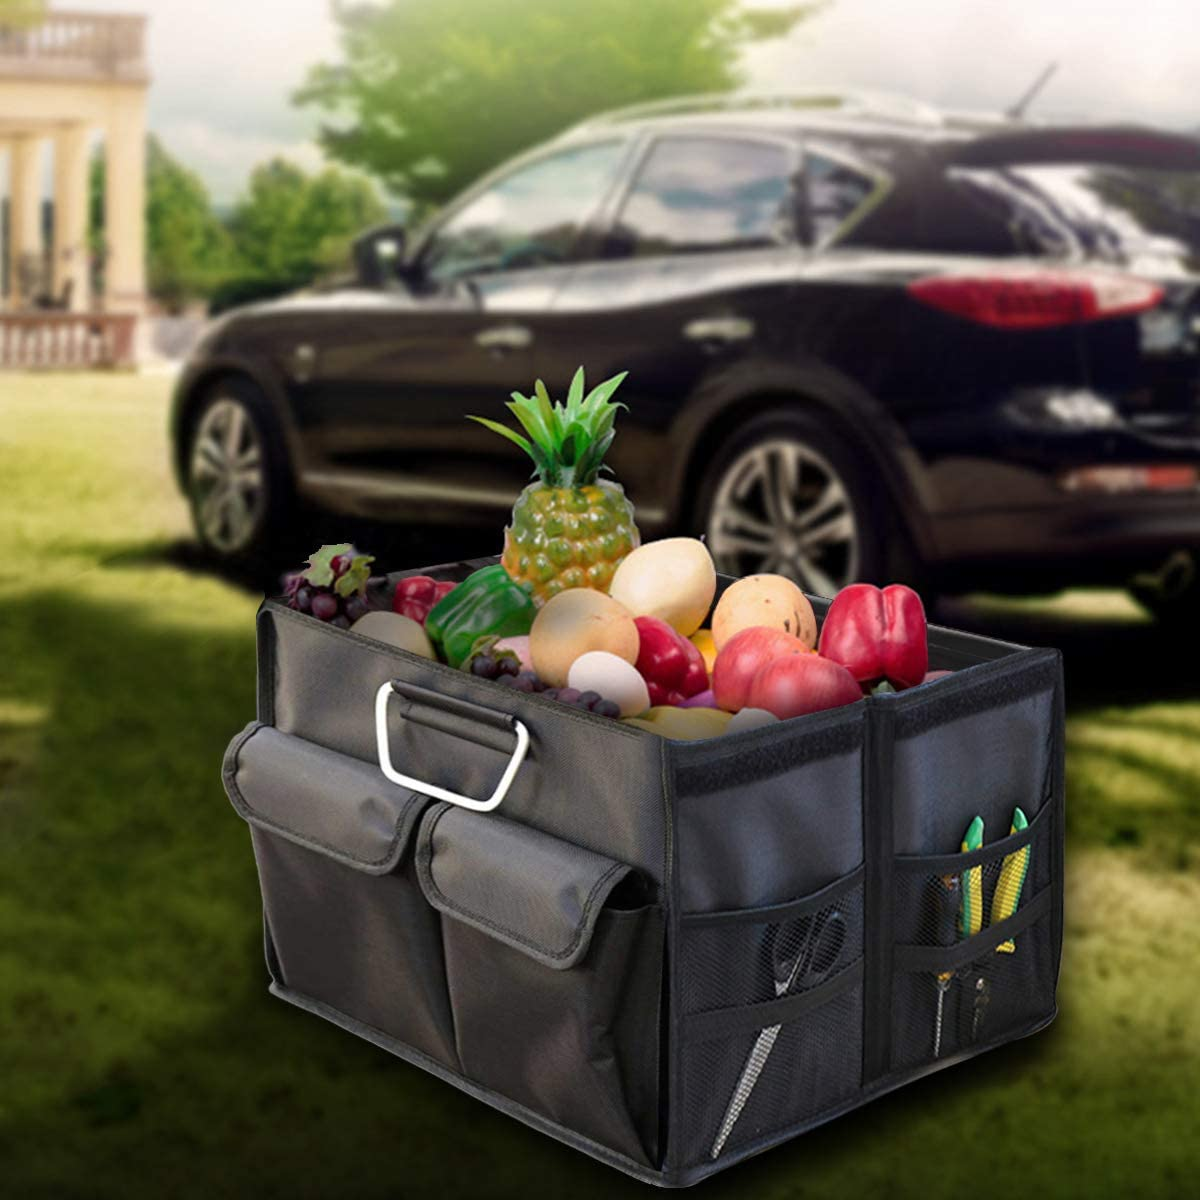 and SUV Van Large Black Blankets Closets Bedrooms Trunk Organizer and Storage Car Back Seat Organizer for Clothes SJINC Foldable Storage Bins Boxes